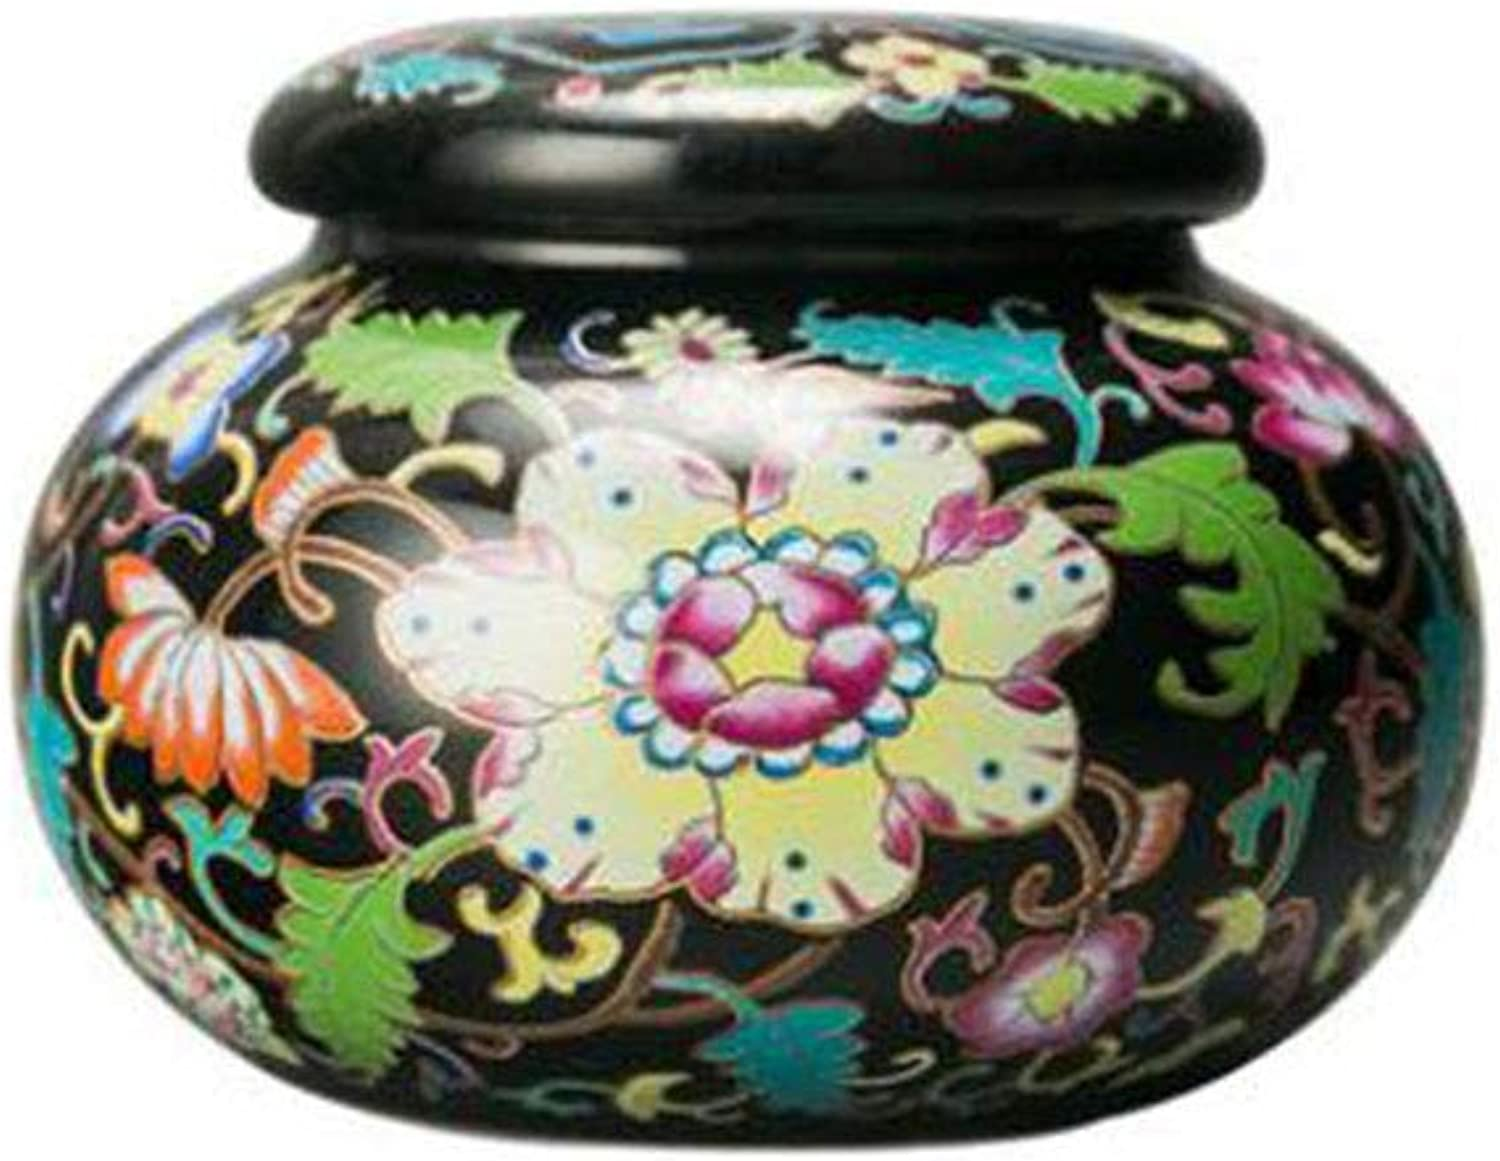 Cremation Urns for Human Ashes Adults and Keepsake Urns  Display Burial Urns at Home Or in Niche at Columbarium,